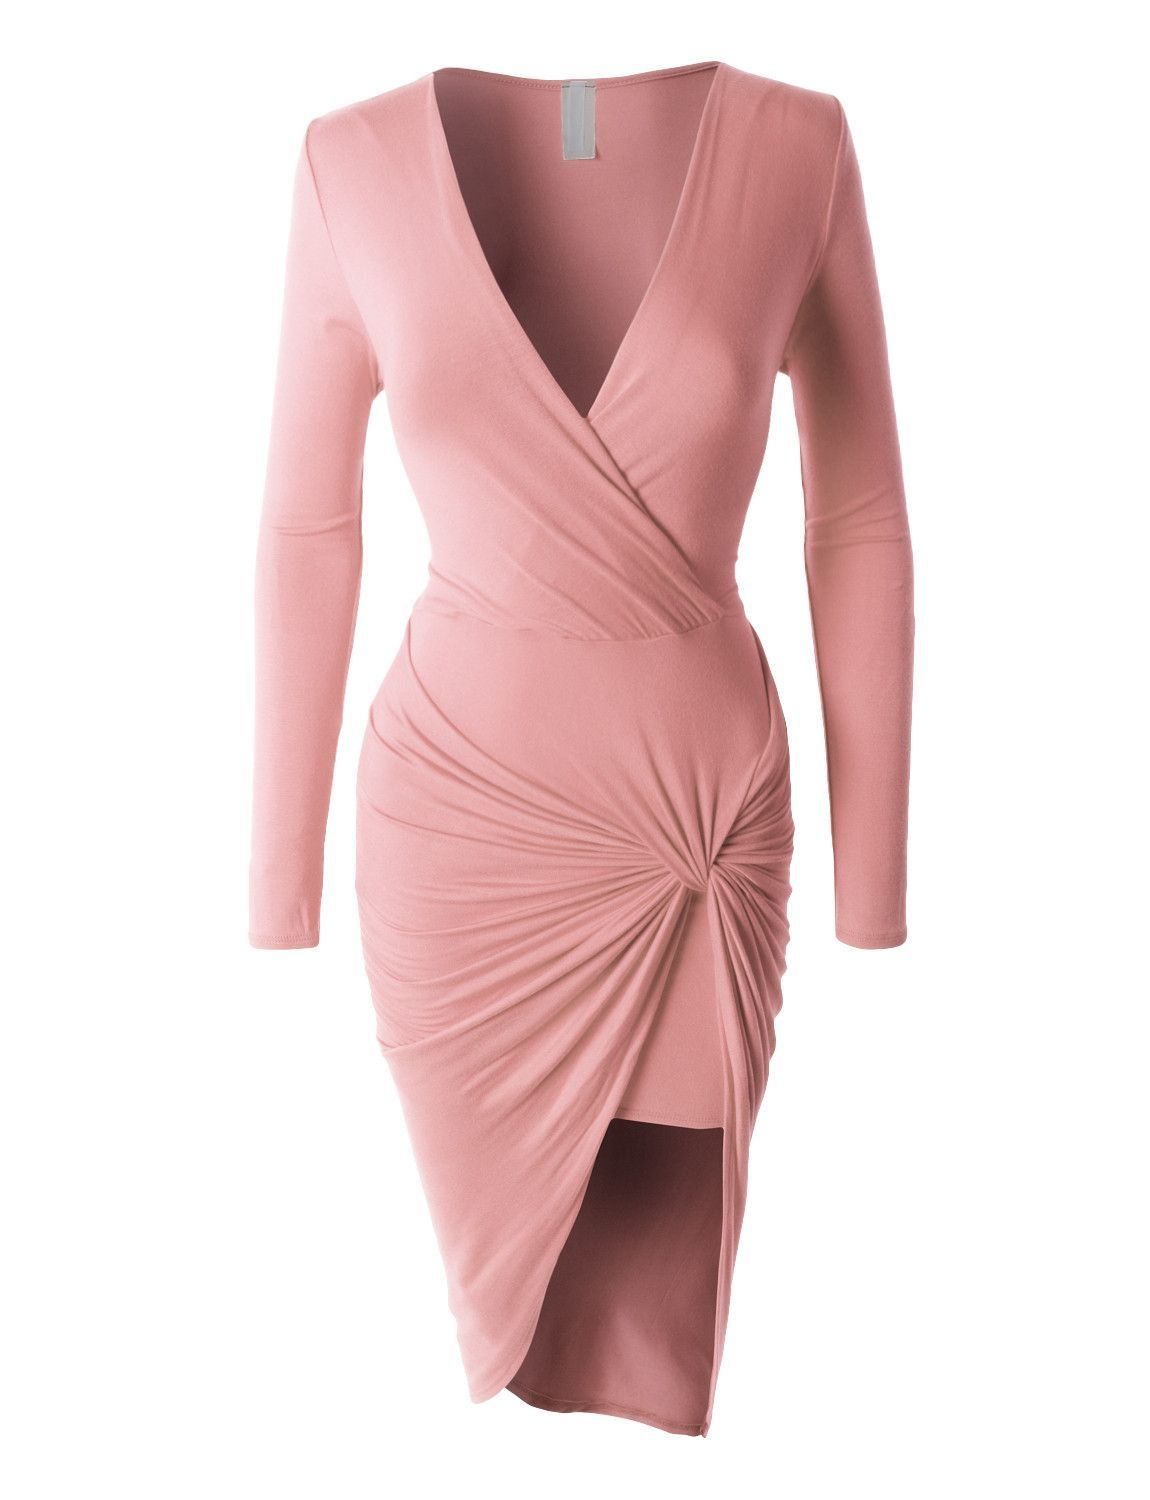 Side Draped Bodycon Dress Clearance Draped Bodycon Dress Fashion Long Sleeve Fitted Dress [ 1500 x 1150 Pixel ]